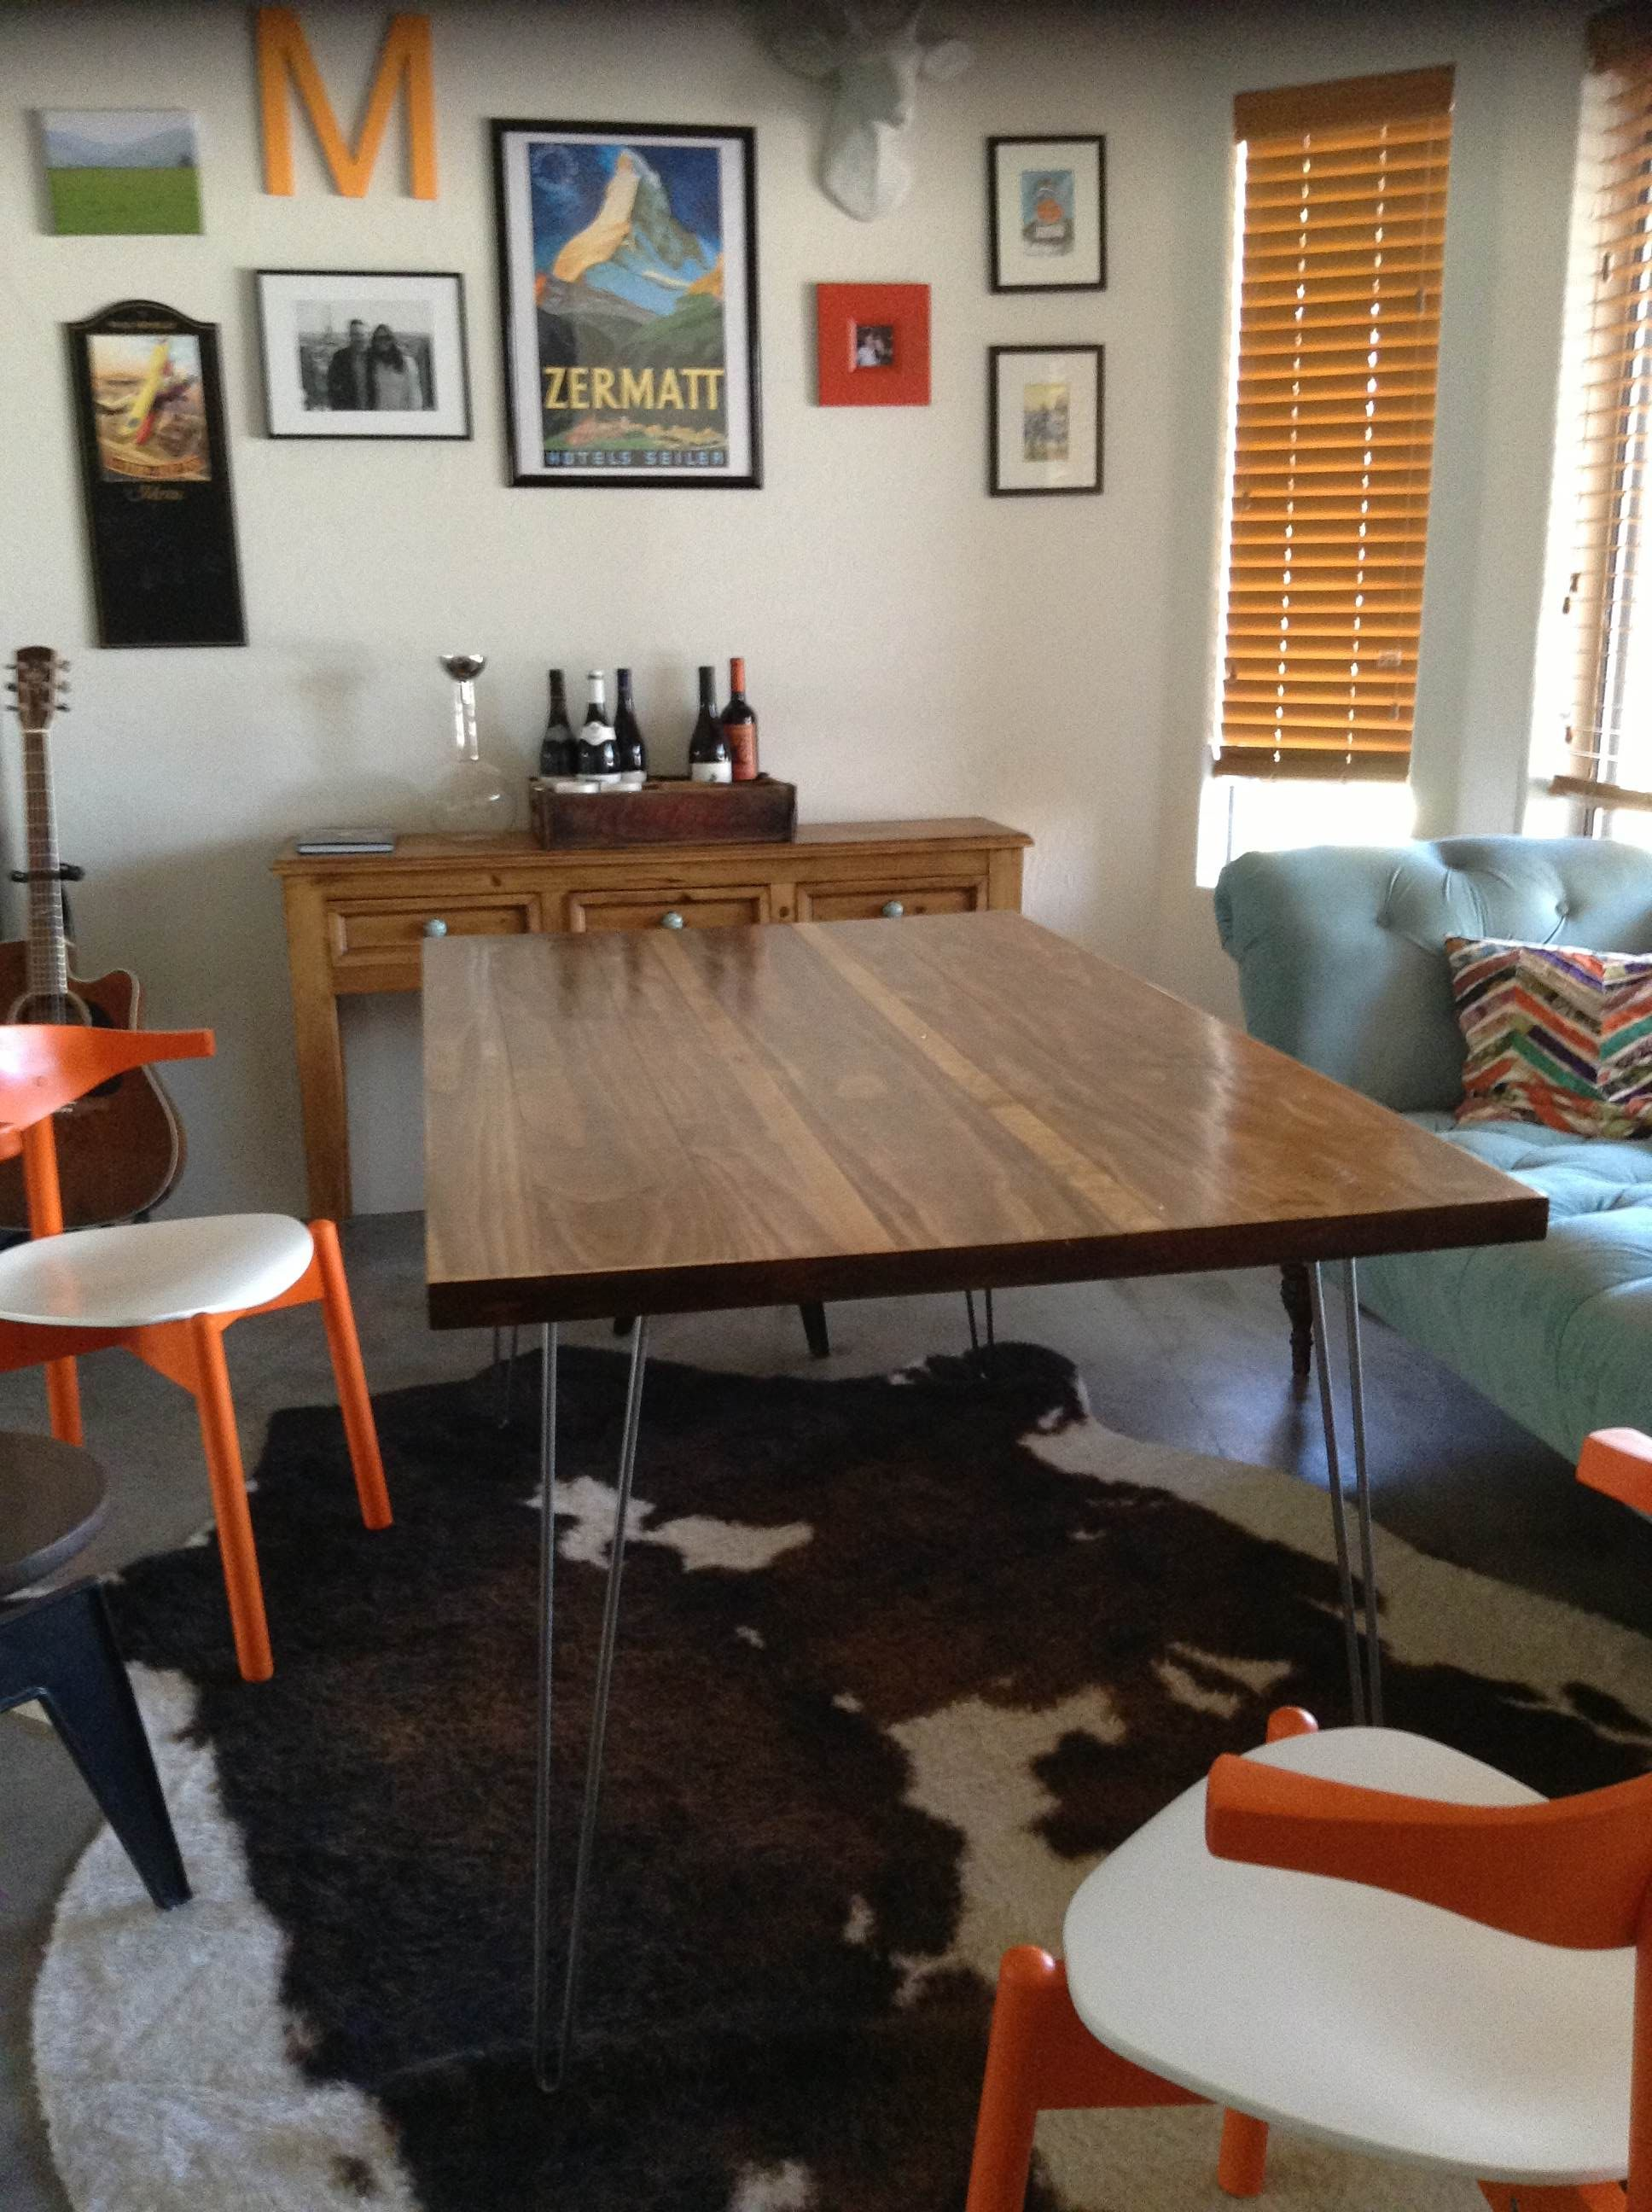 Pin by Ryan Stilp on Dining | Midcentury modern dining table ...